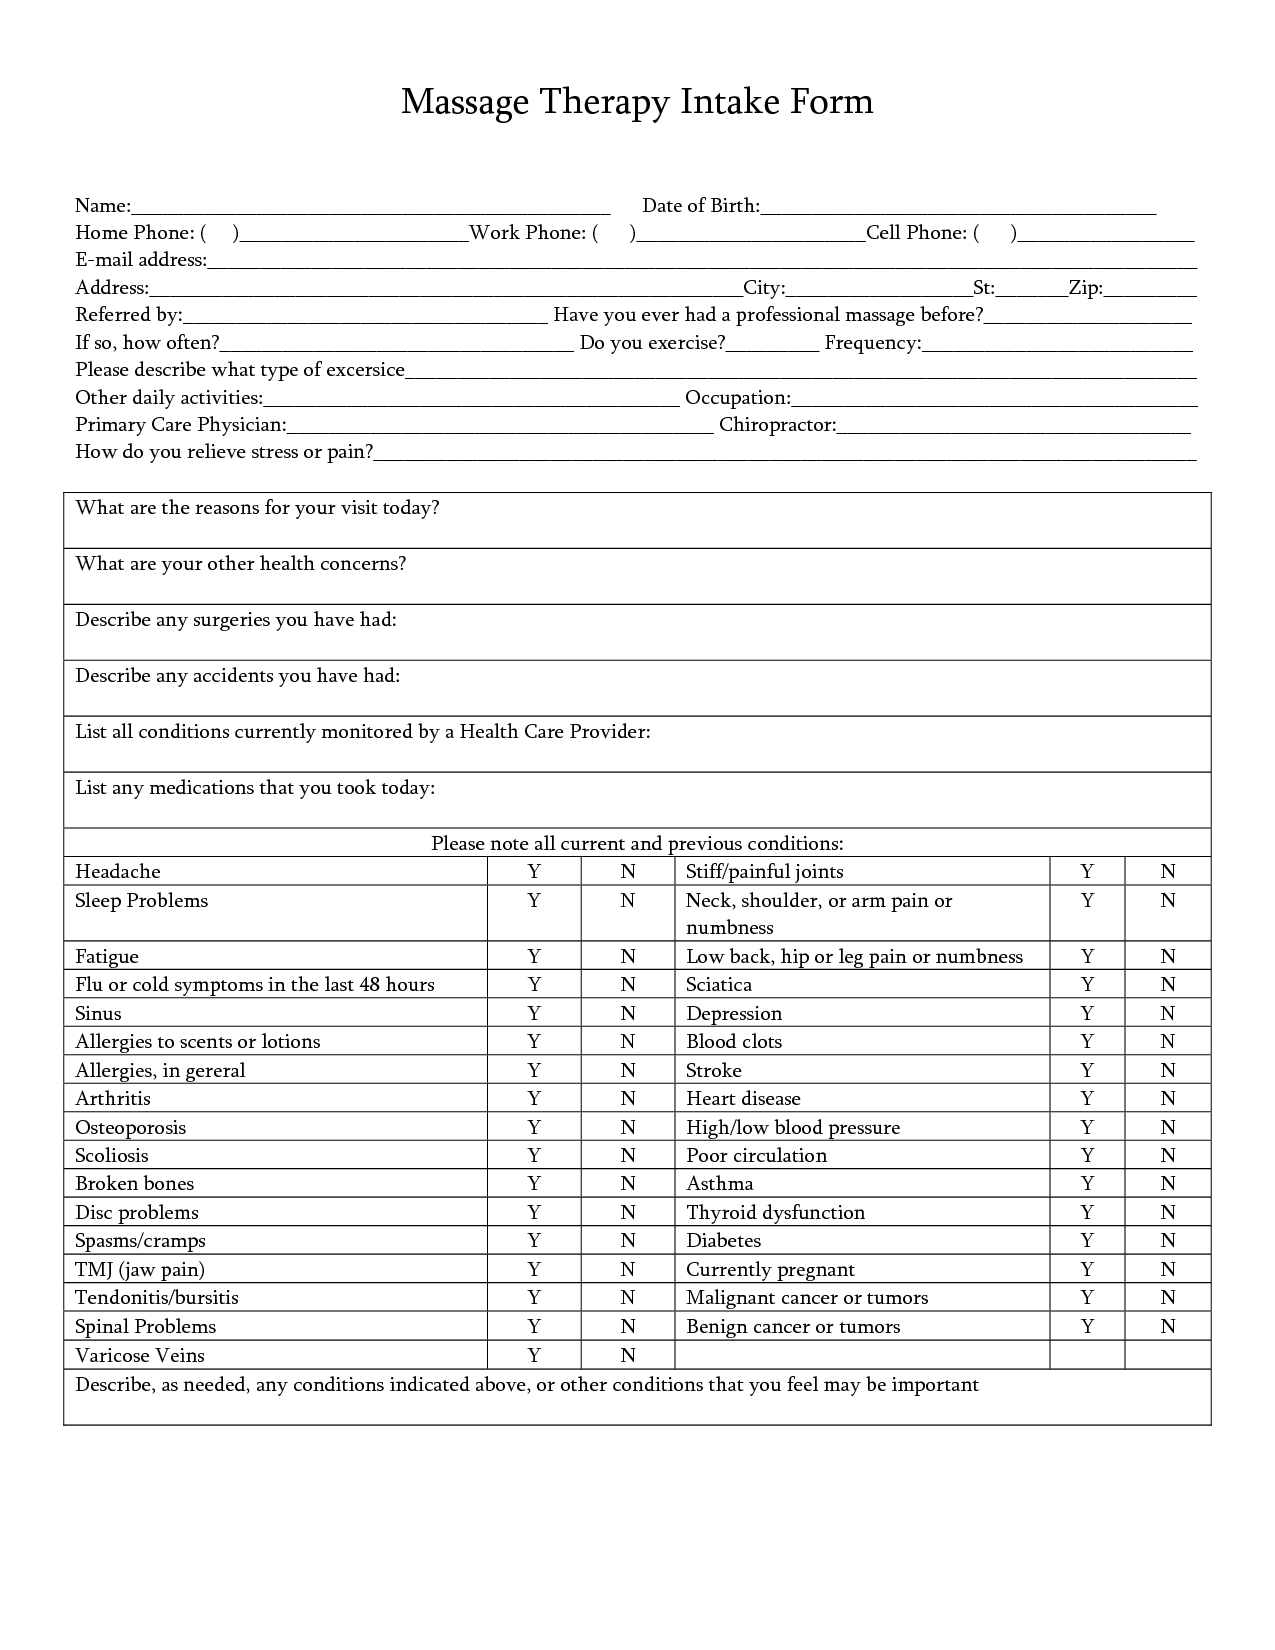 Acupuncture Intake Form Pdf